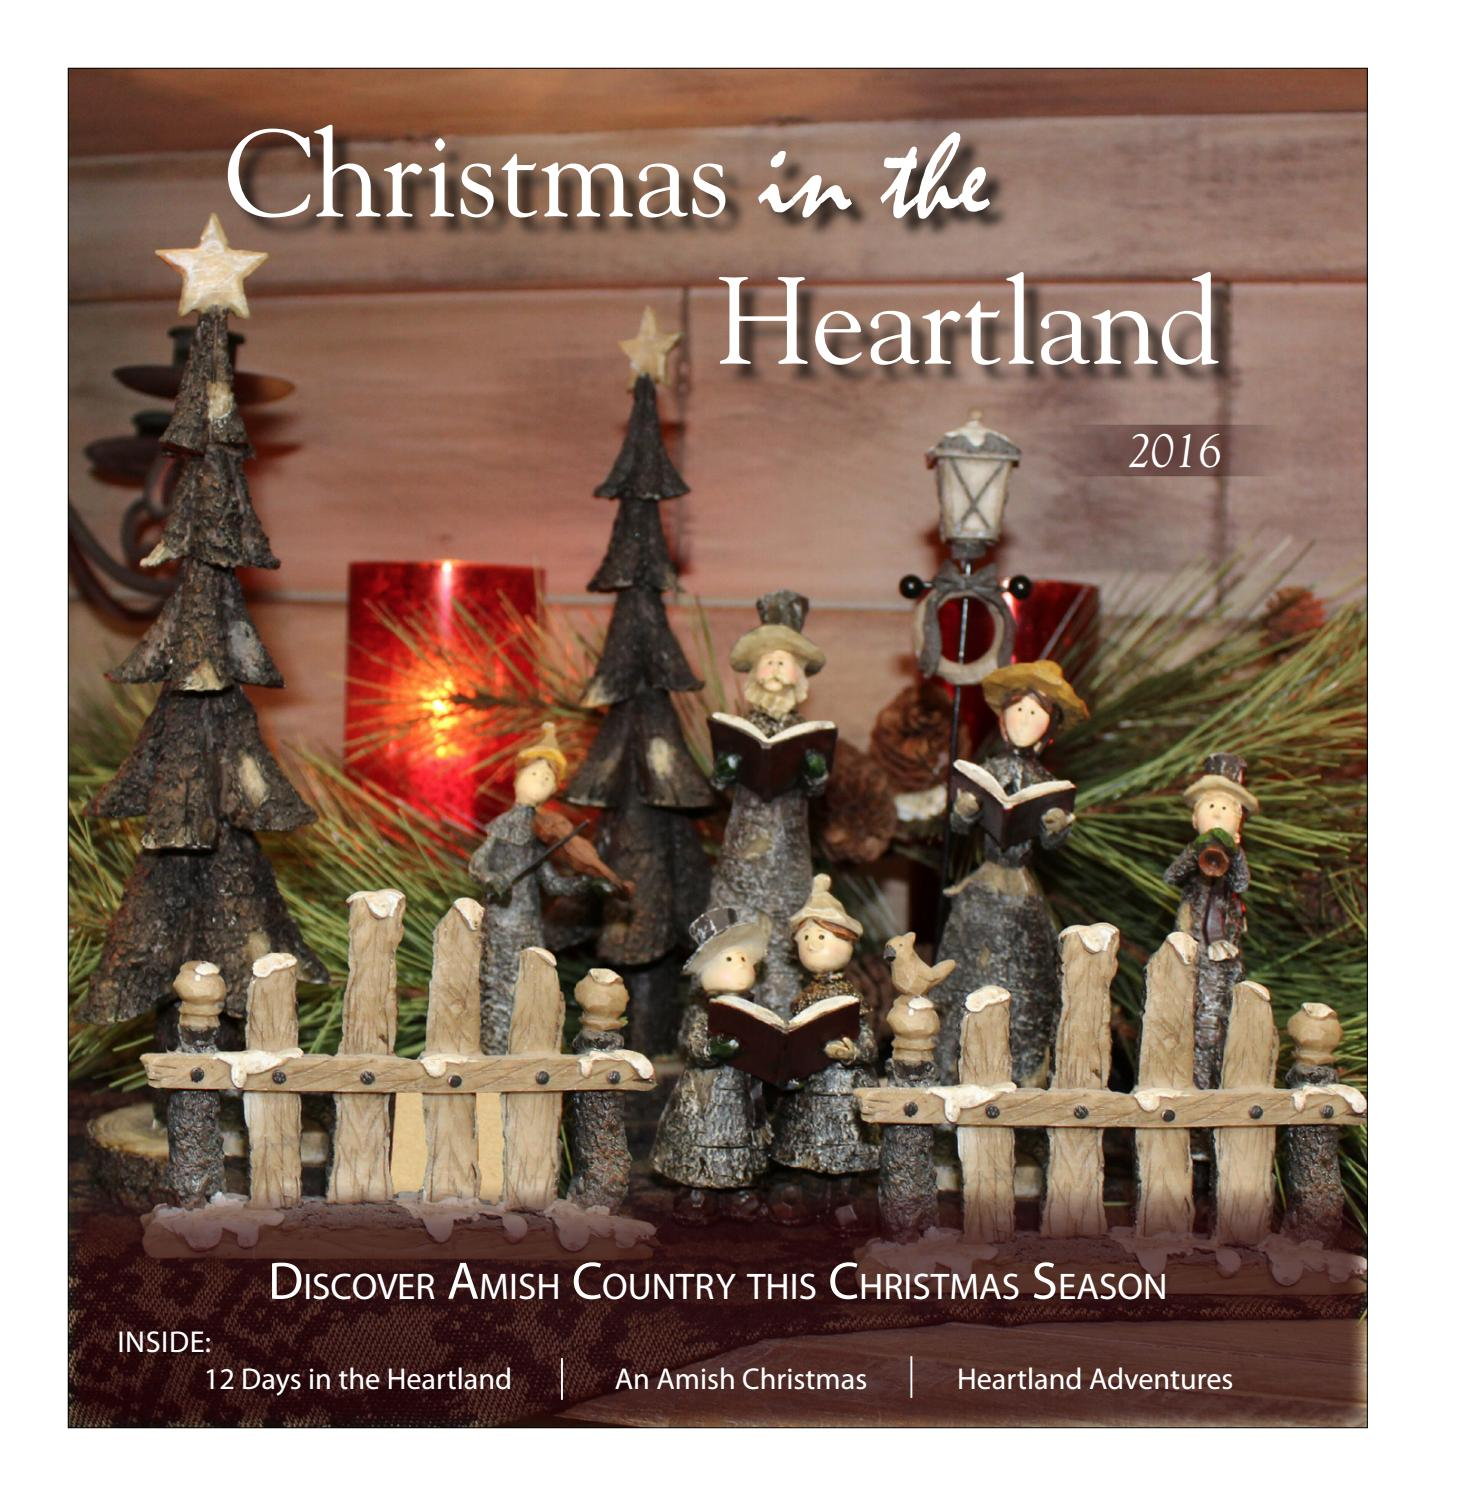 christmas in the heartland by gatehouse media neo issuu rh issuu com